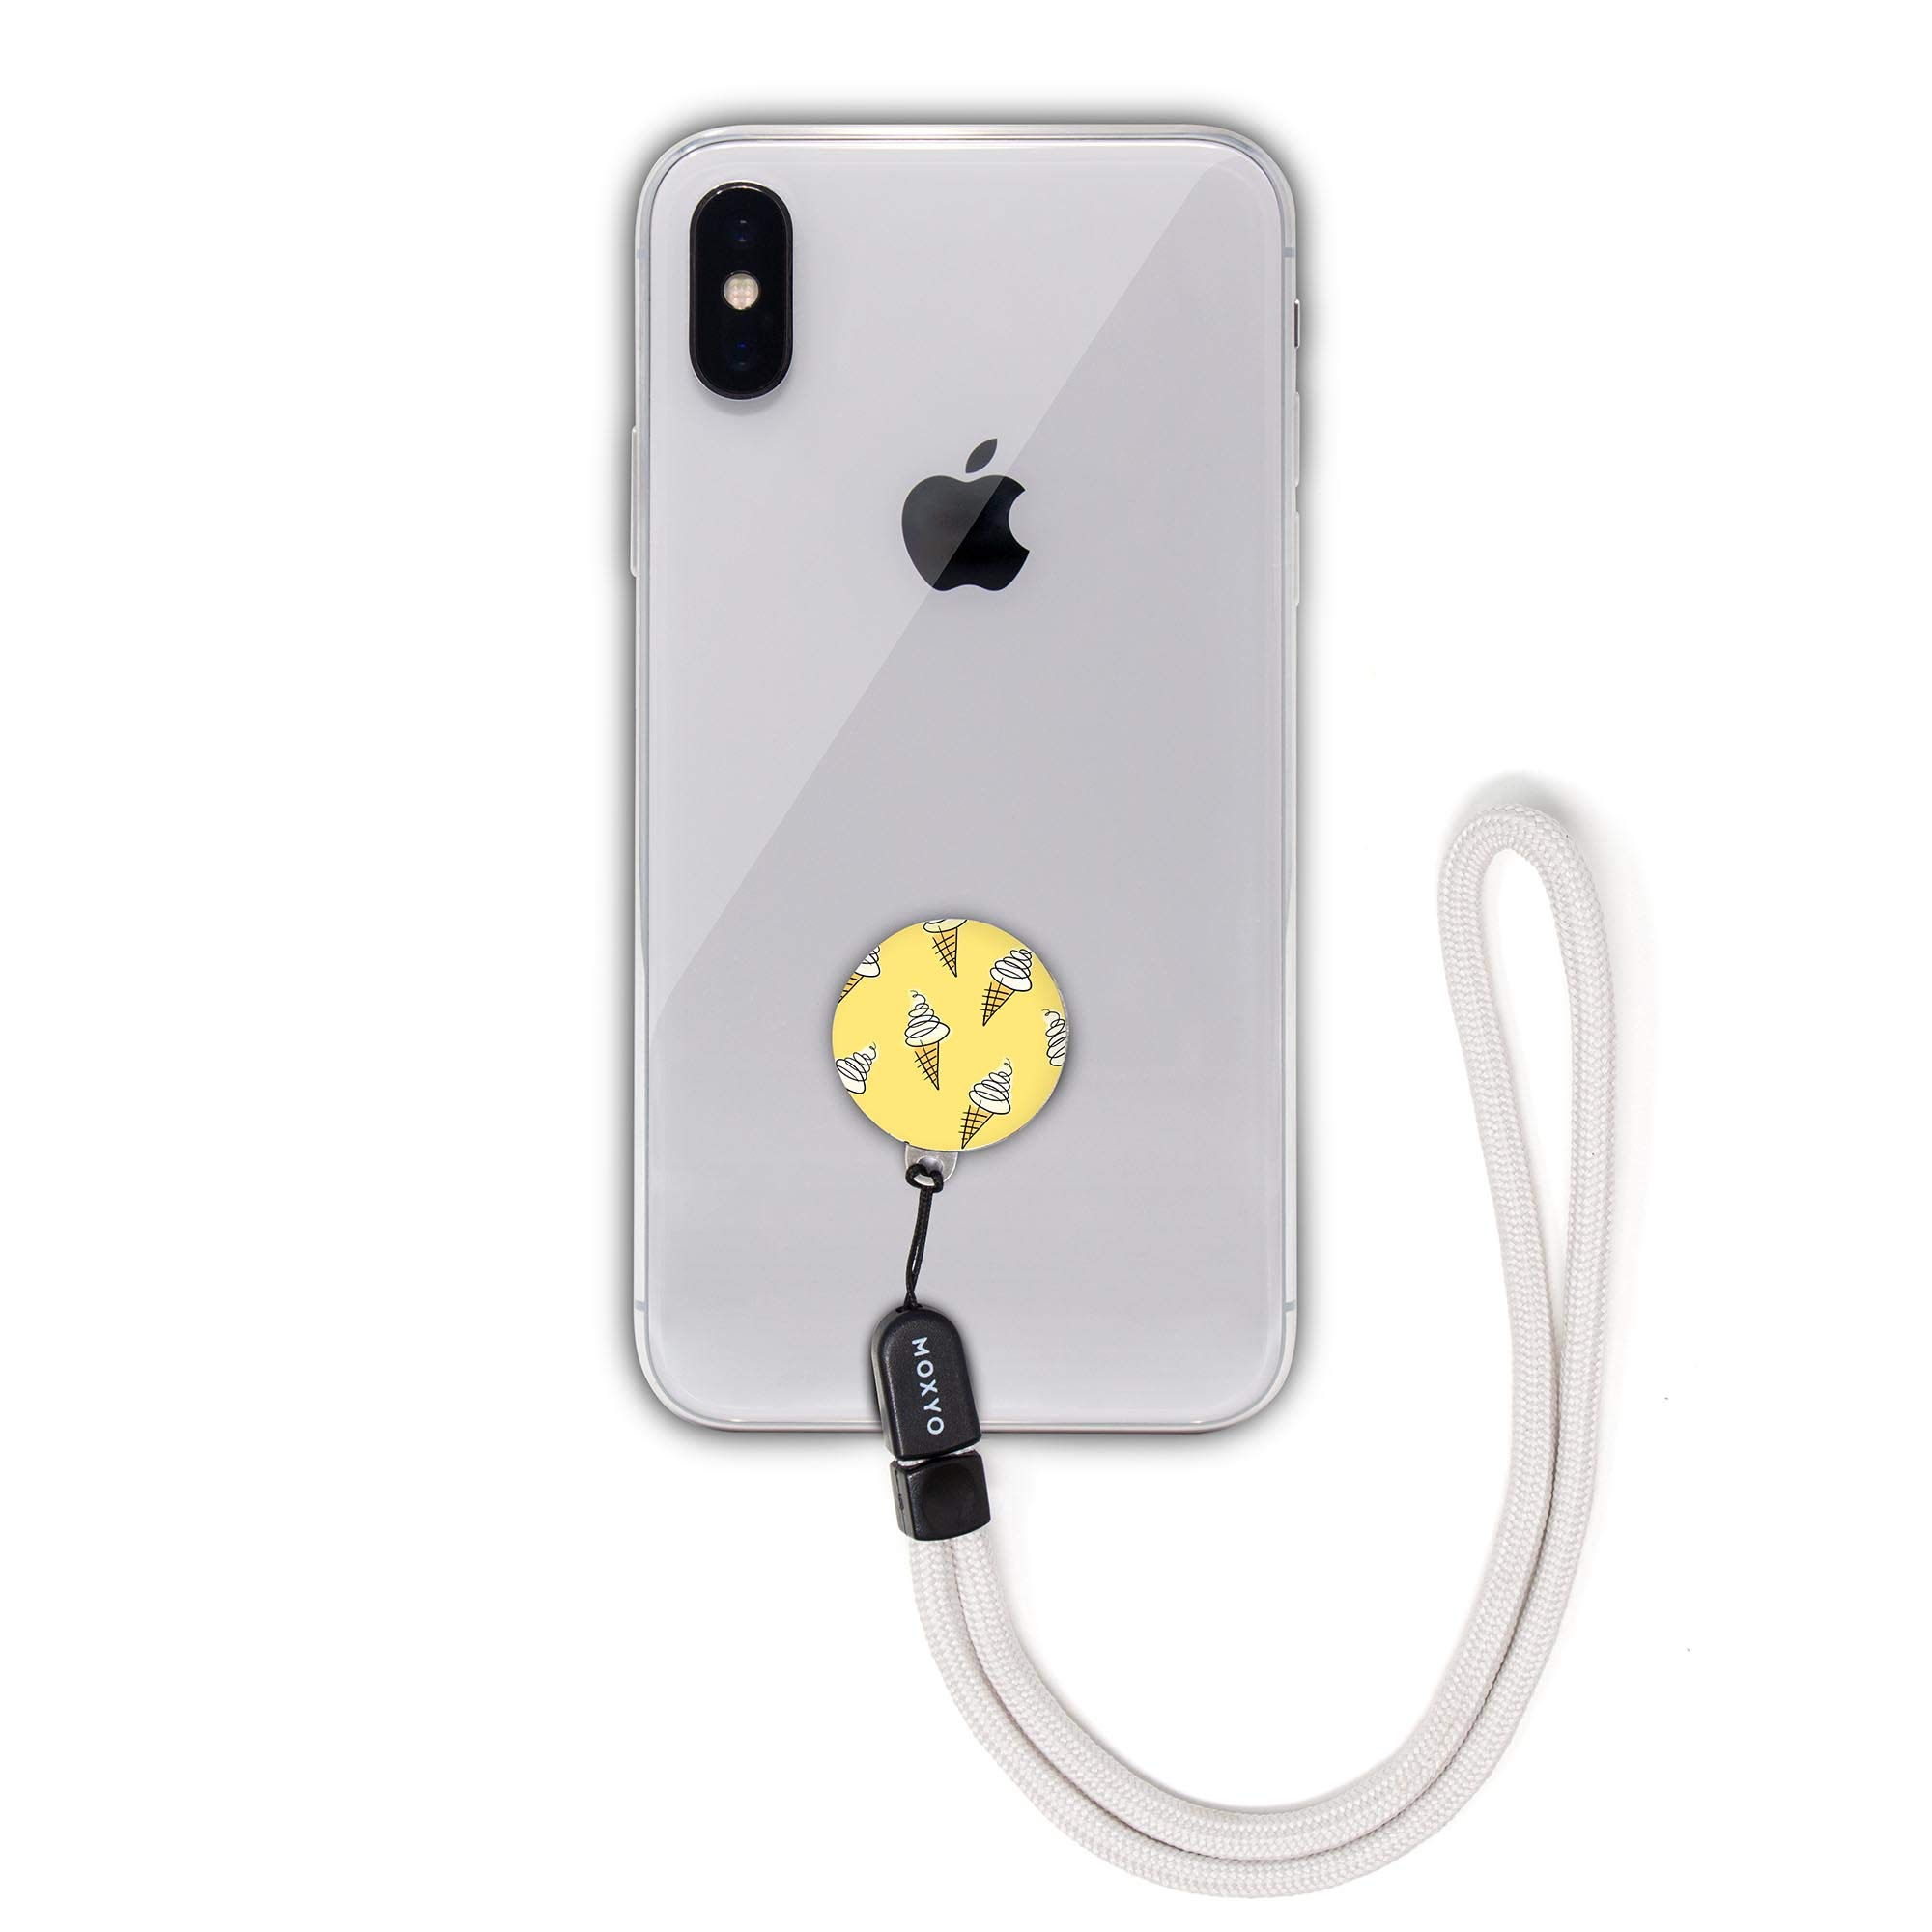 MOXYO - Zigi Band - Universal Cell Phone Lanyard and Wrist Strap, Works with All Smartphones and Tablets Including iPhone and Galaxy & Most Cases (Yellow Ice Cream w/Grey Lanyard)